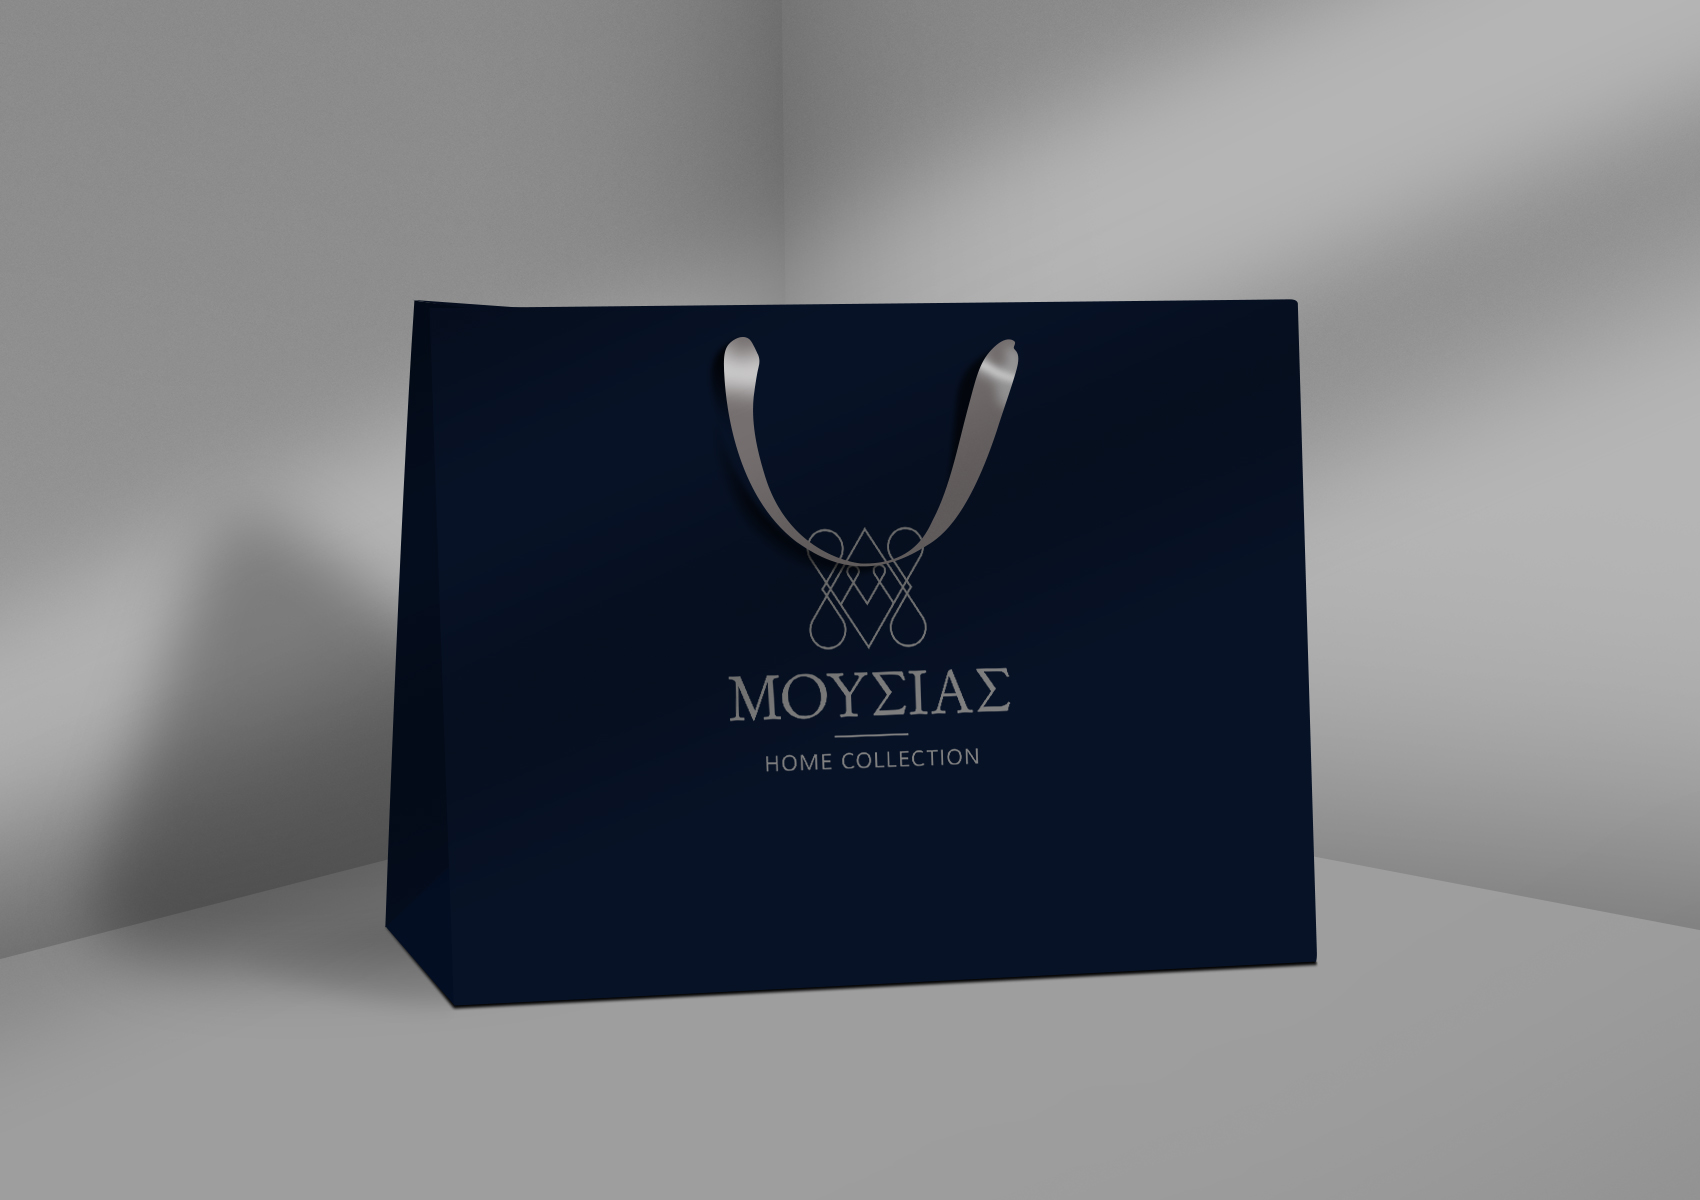 Moussias Home Collection shopping bag 1700x1200 by xhristakis